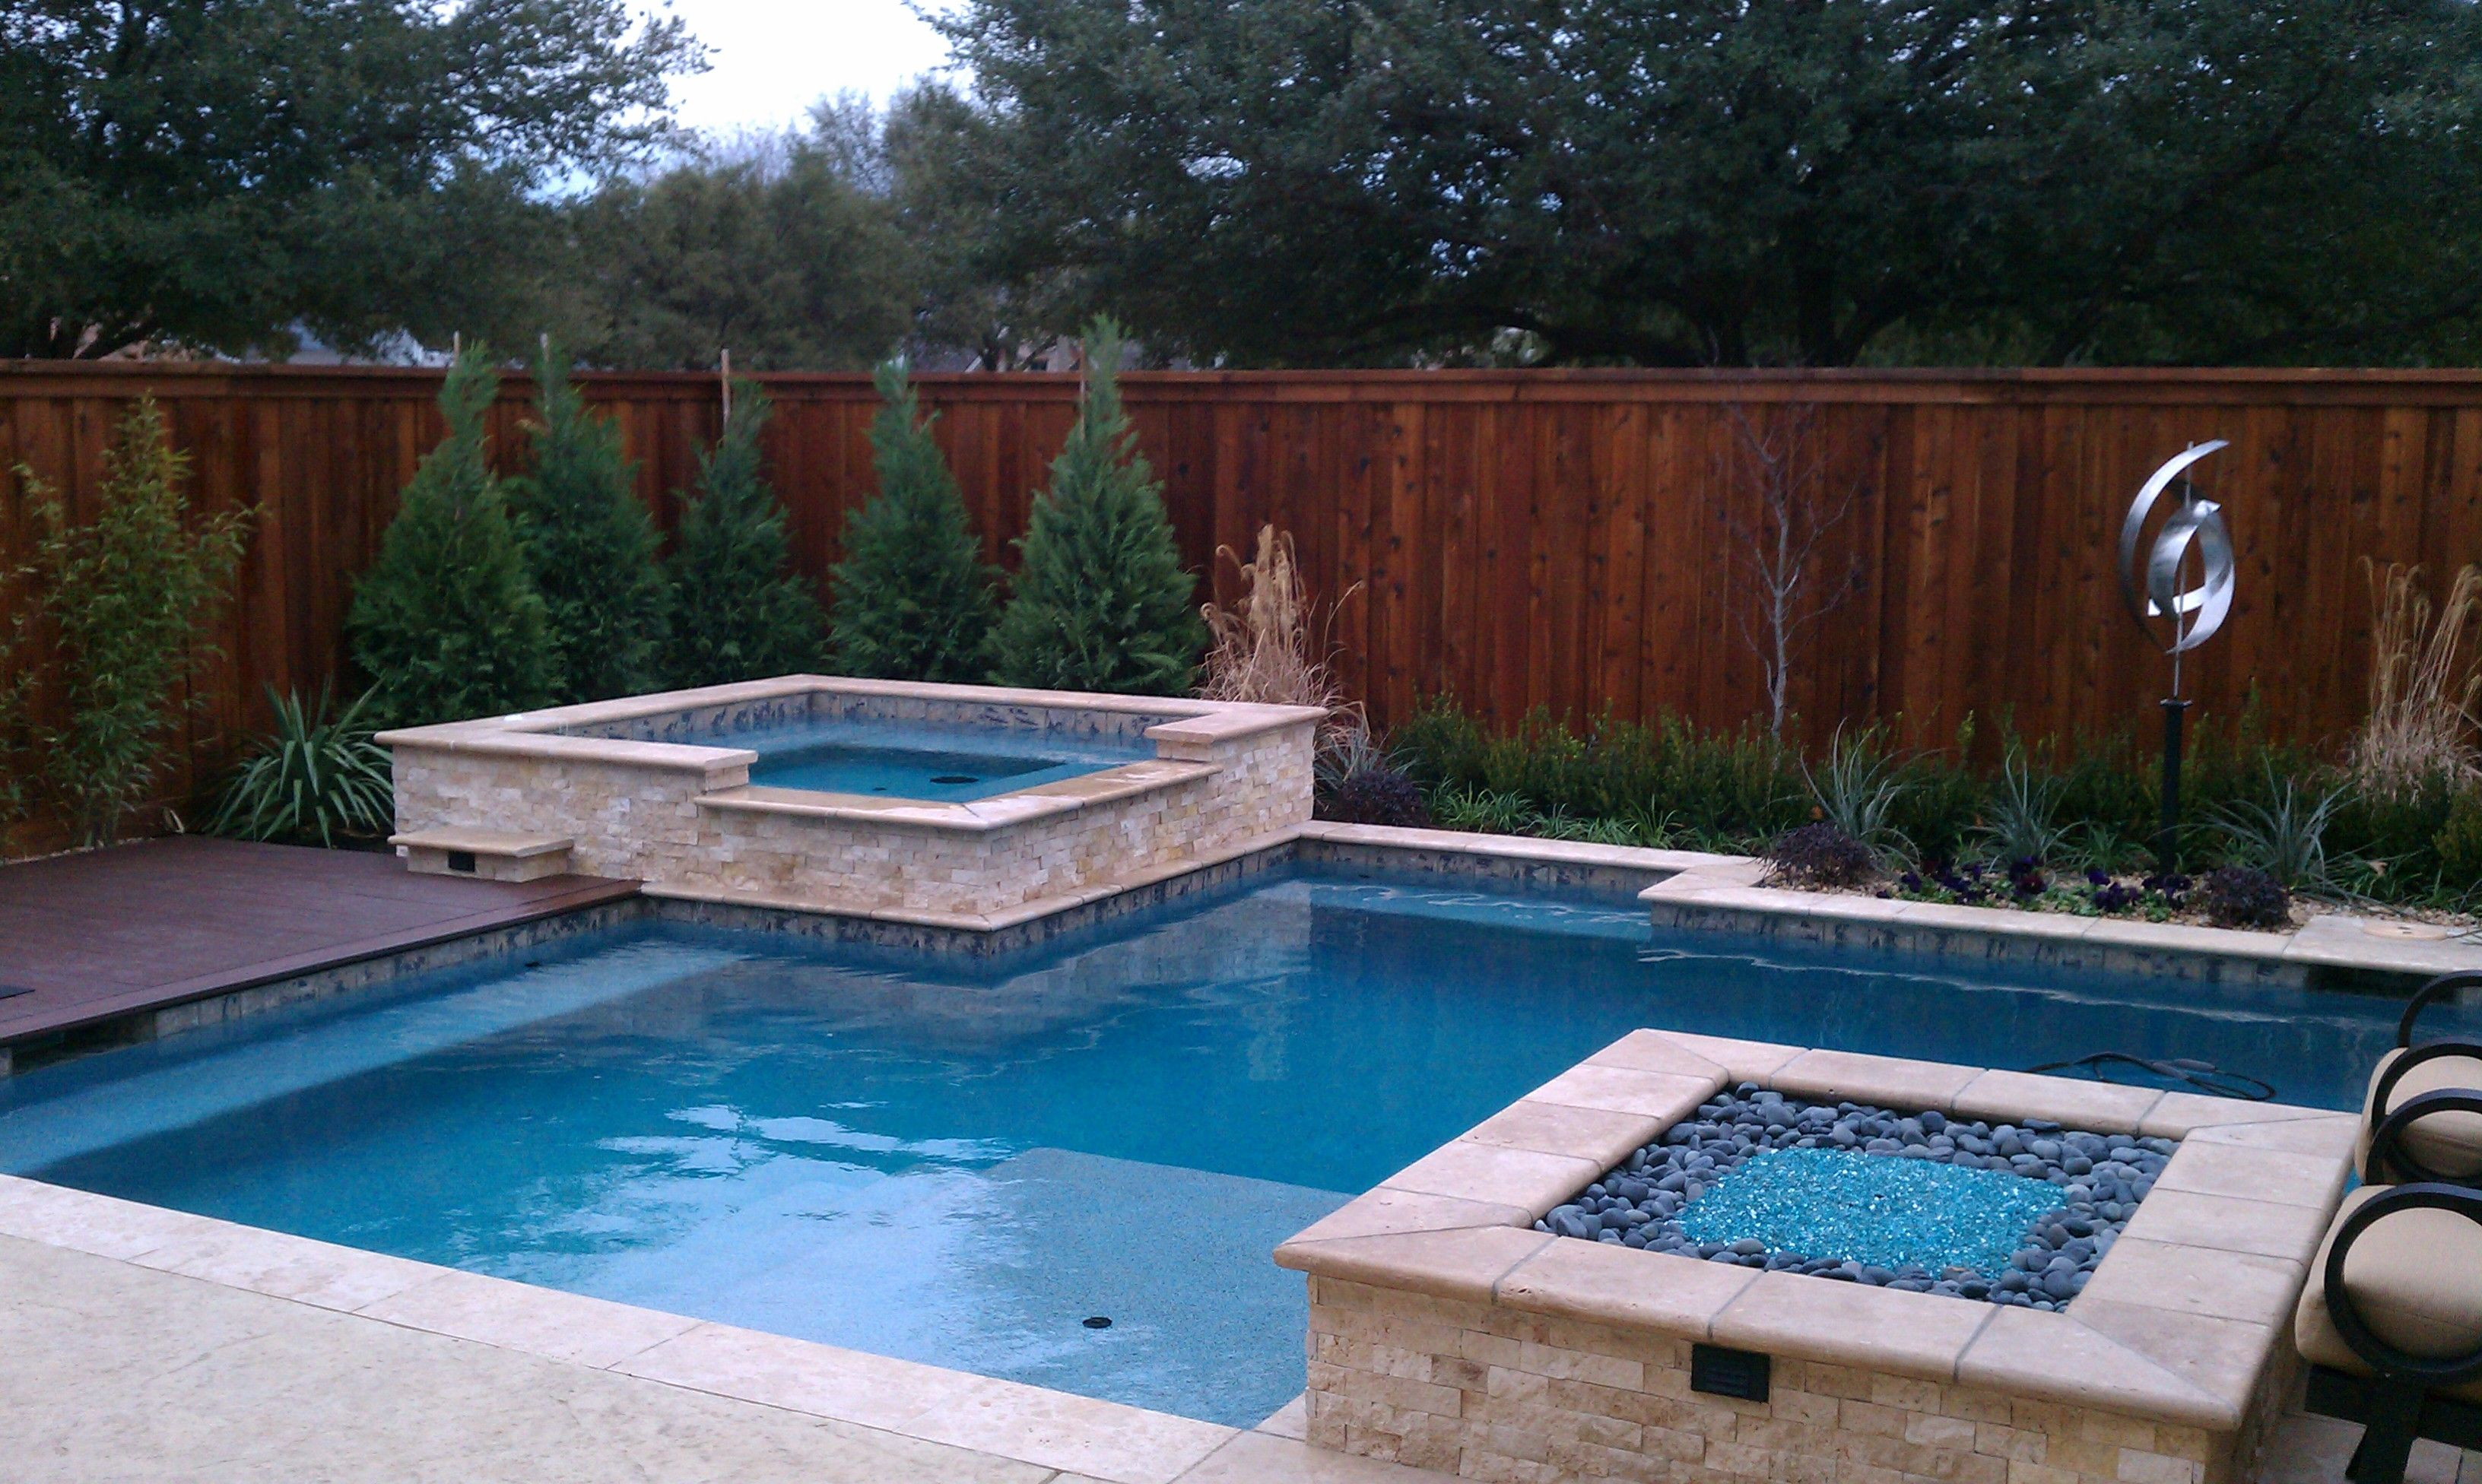 contemporary pool with nice strait lines. travertine coping